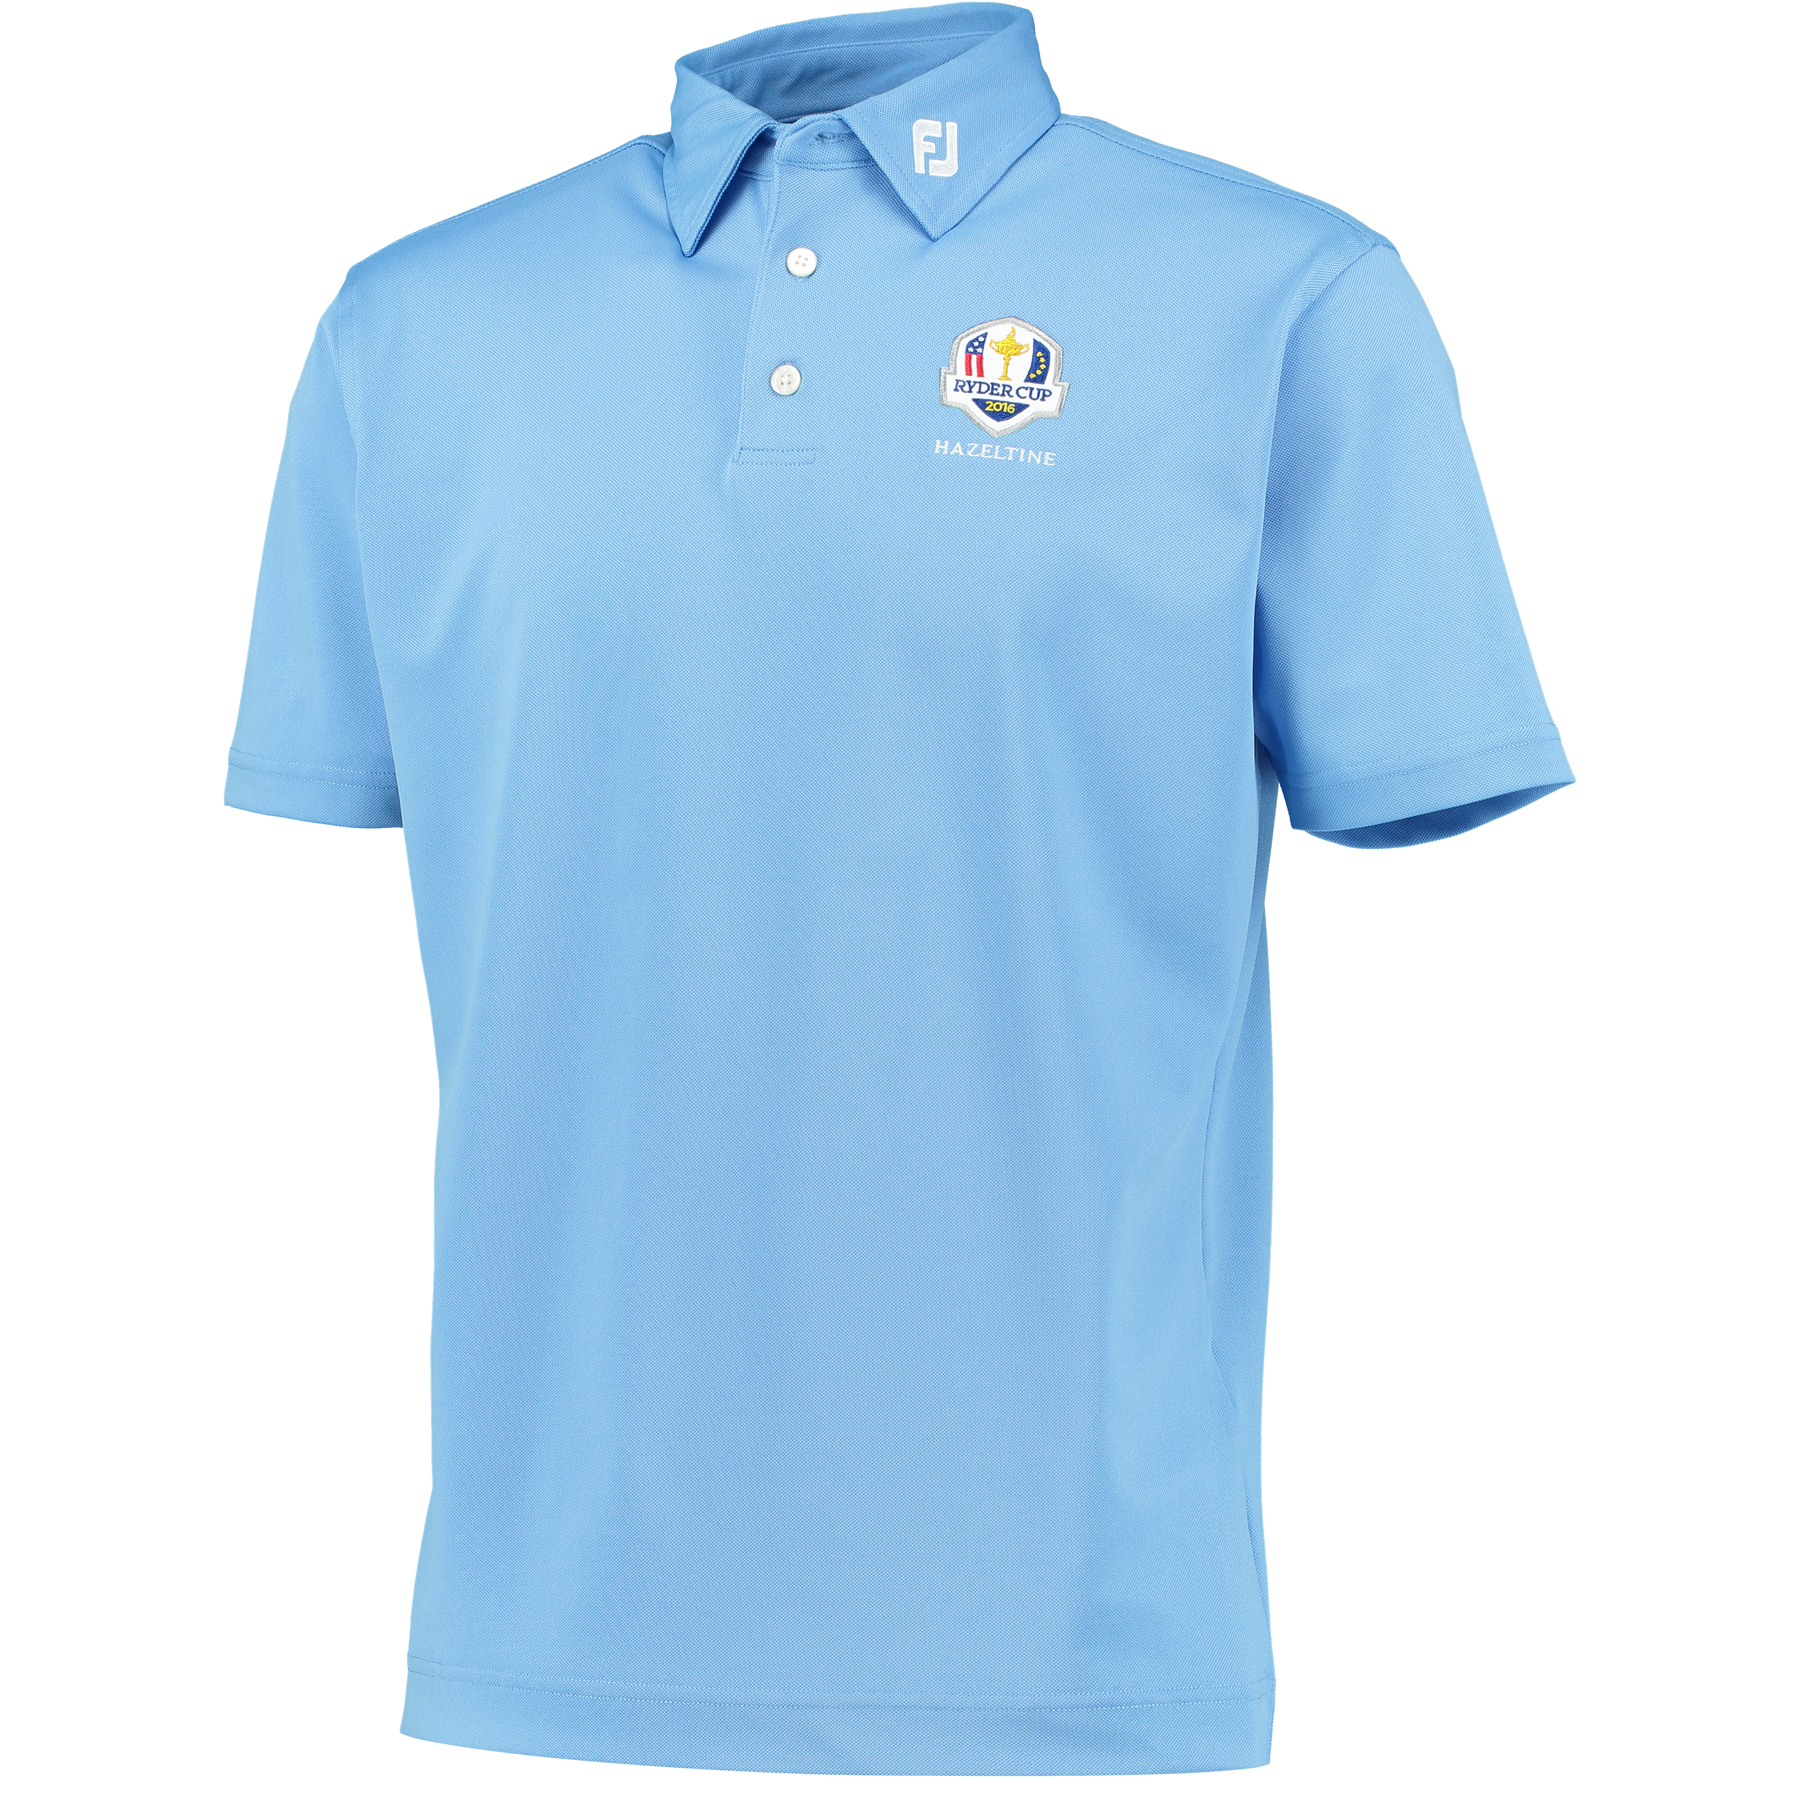 The 2016 Ryder Cup Footjoy Solid Stretch Pique Polo Light Blue